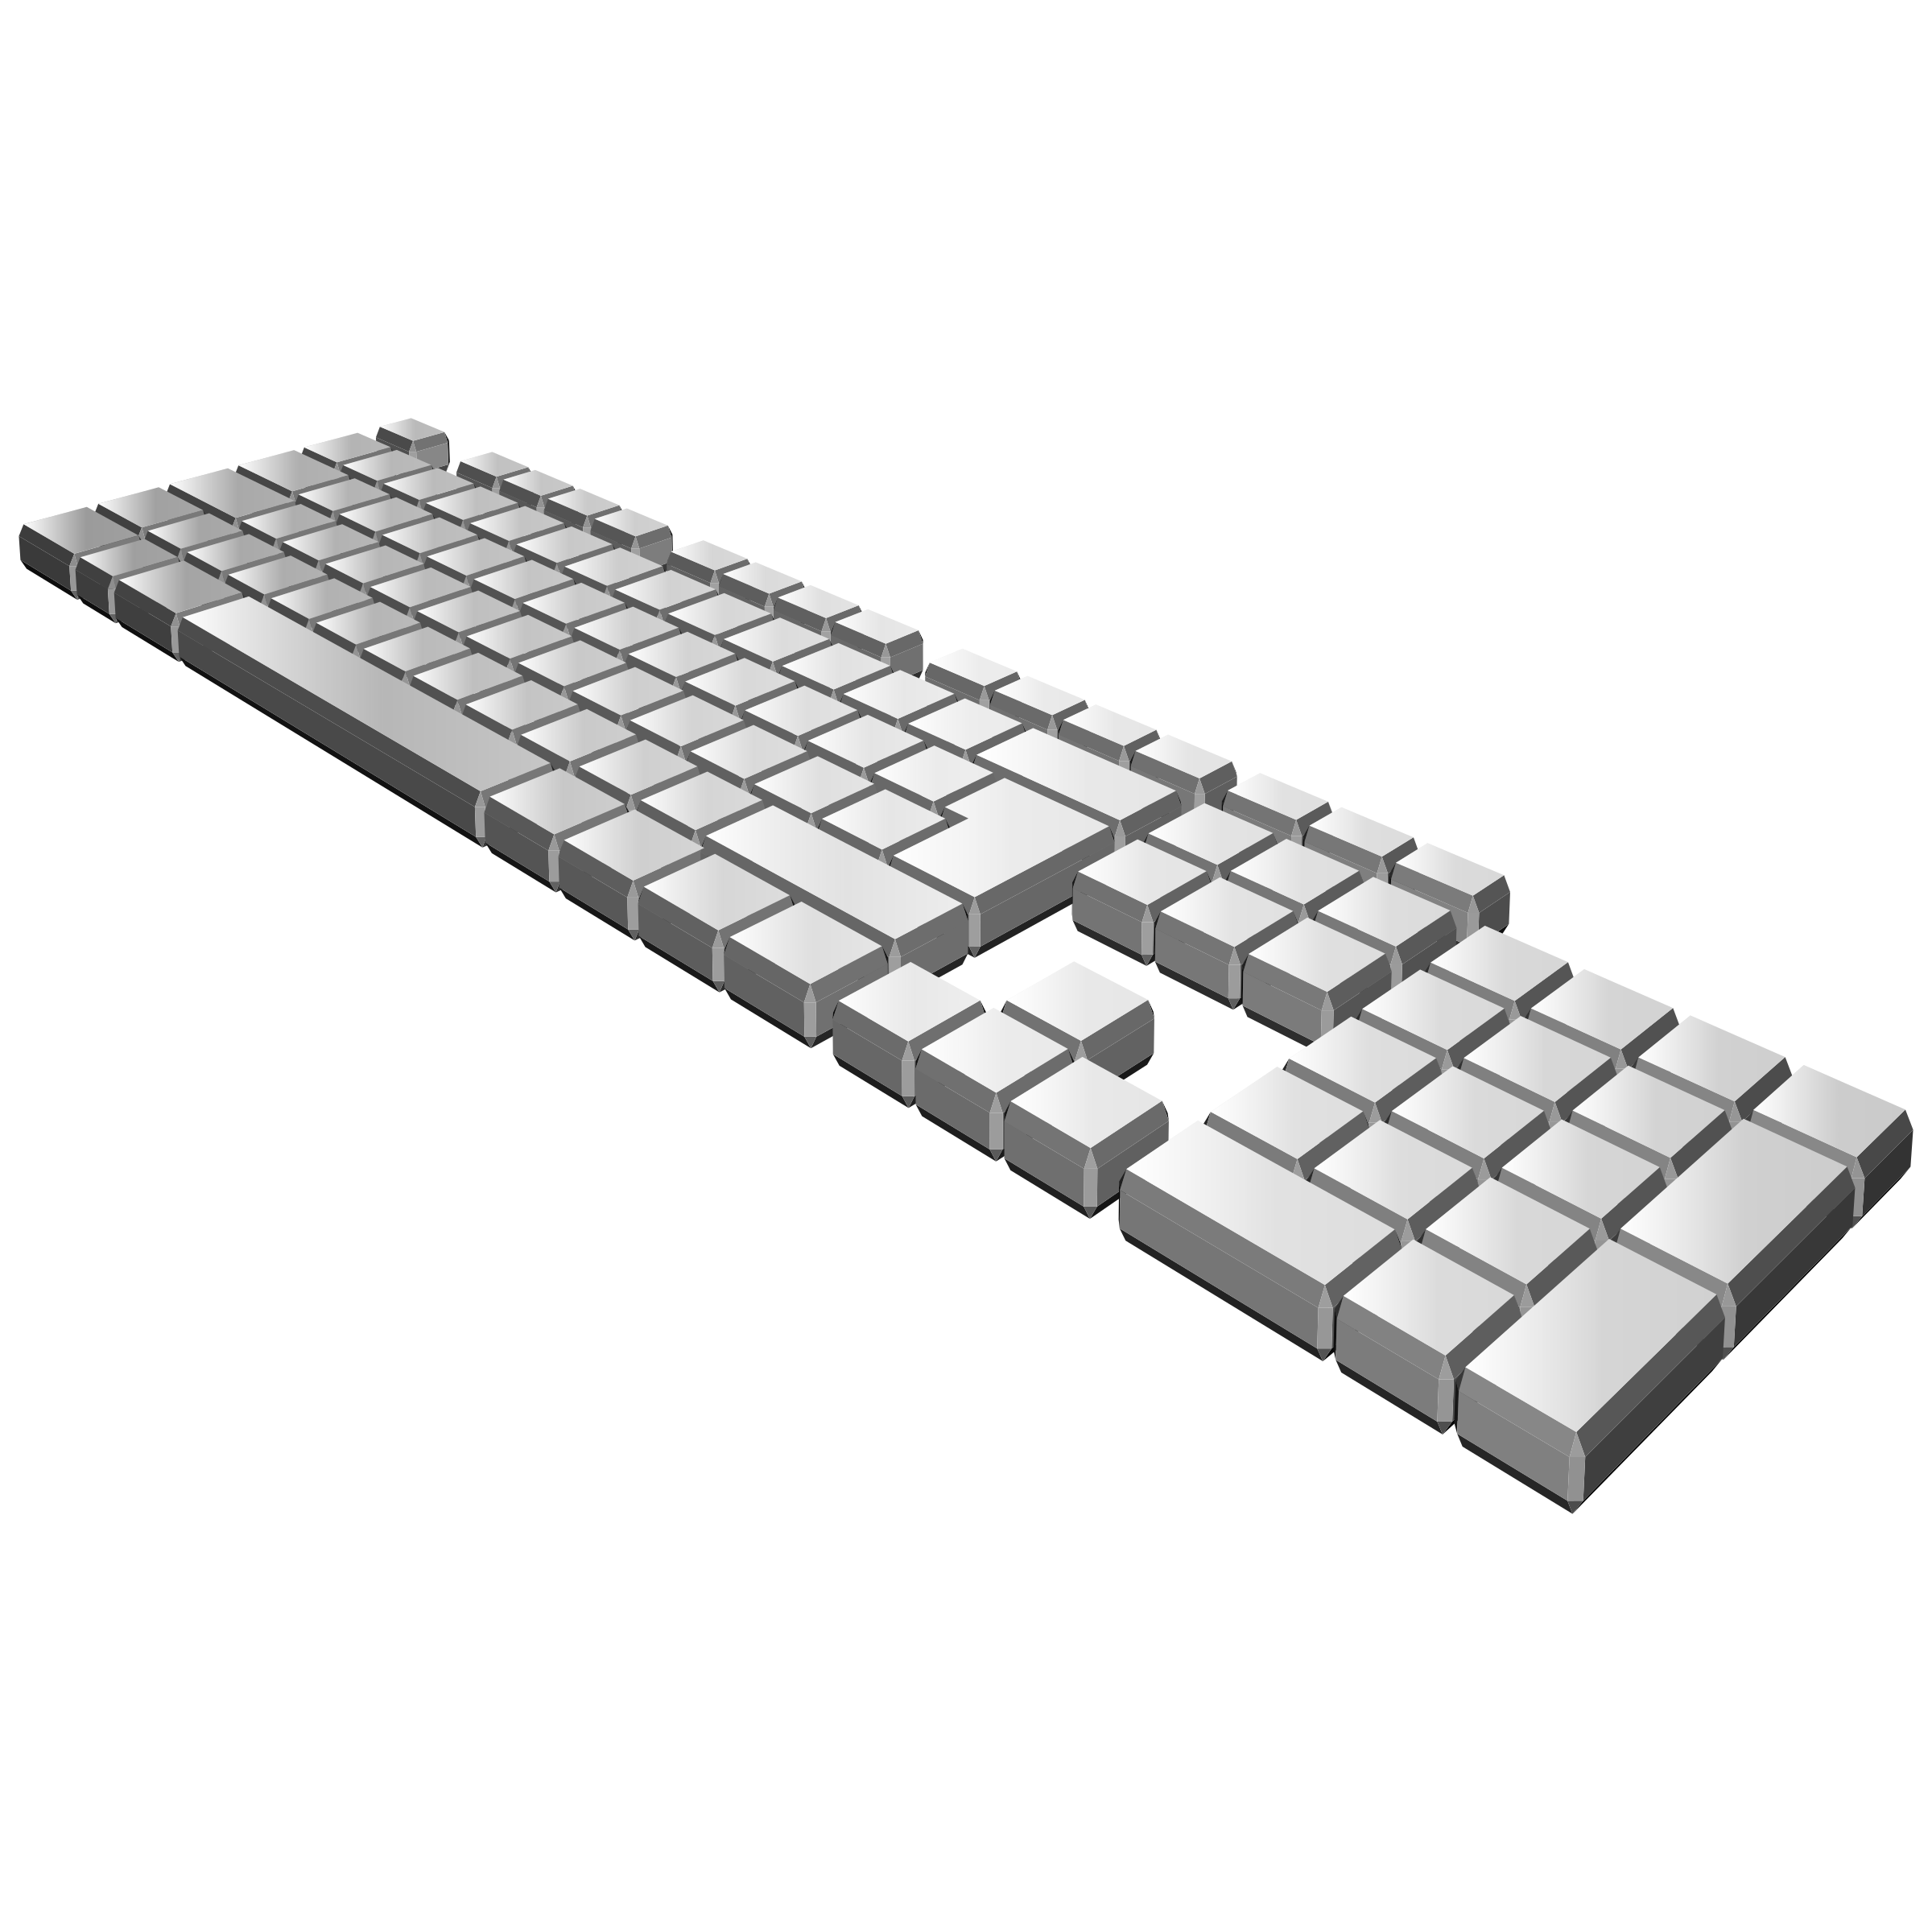 Keyboard of a computer clipart vector stock Clipart - keyboard perspective vector stock